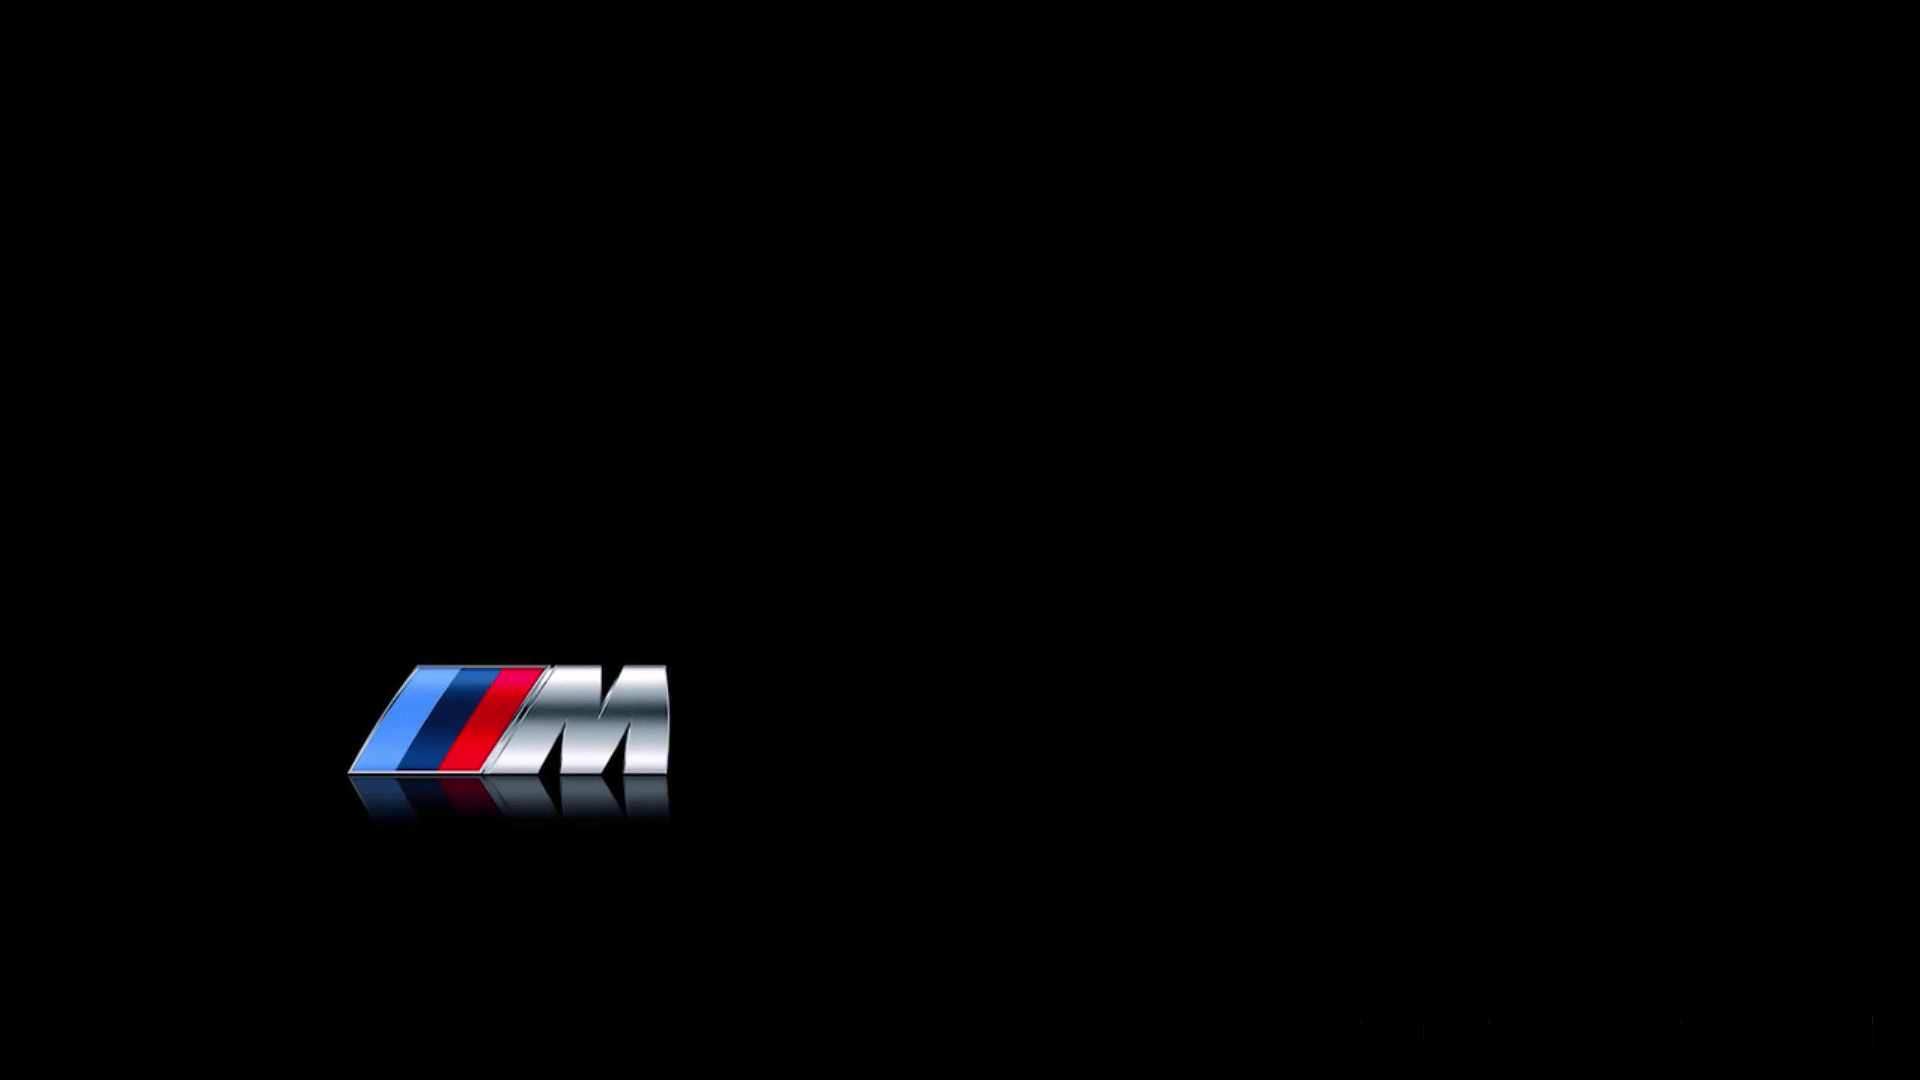 images for bmw m logo wallpaper hd